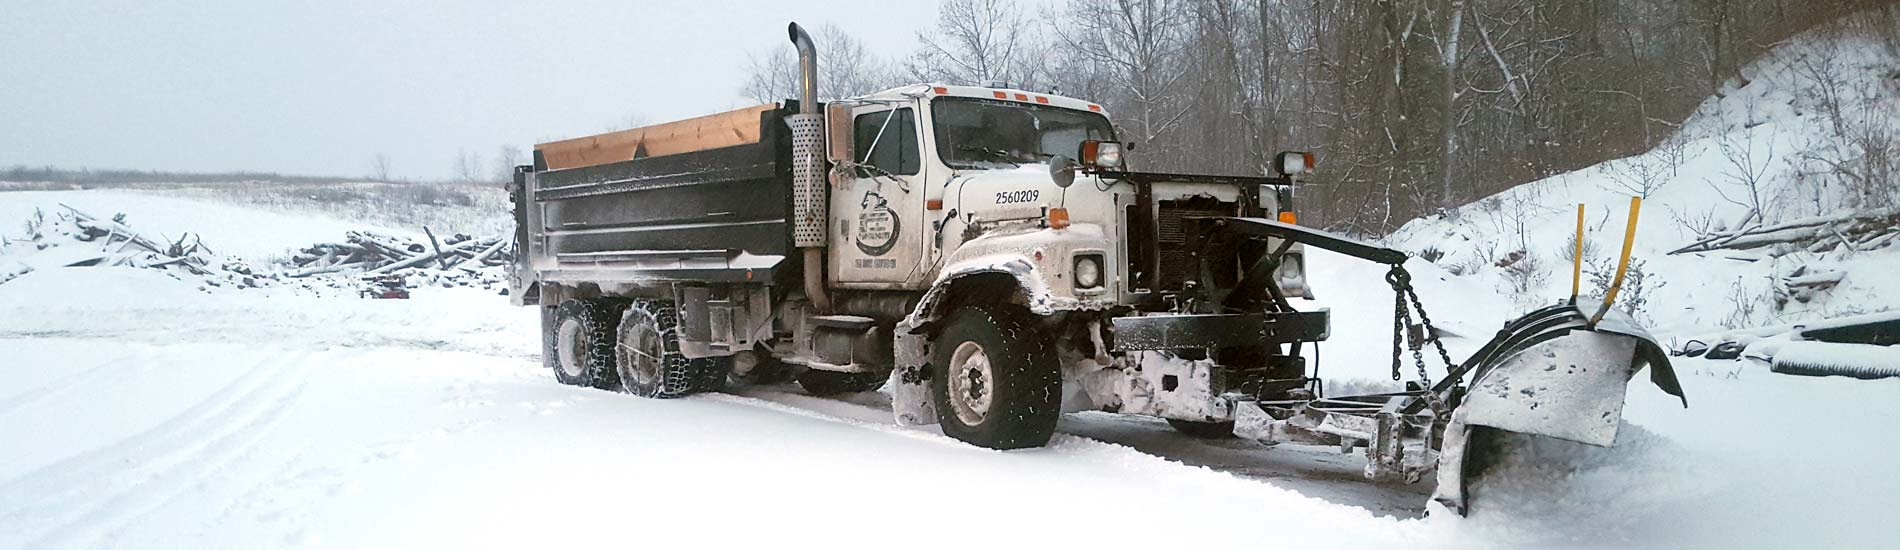 Dump truck with a snow plow attachment for commercial snow removal and road maintenance